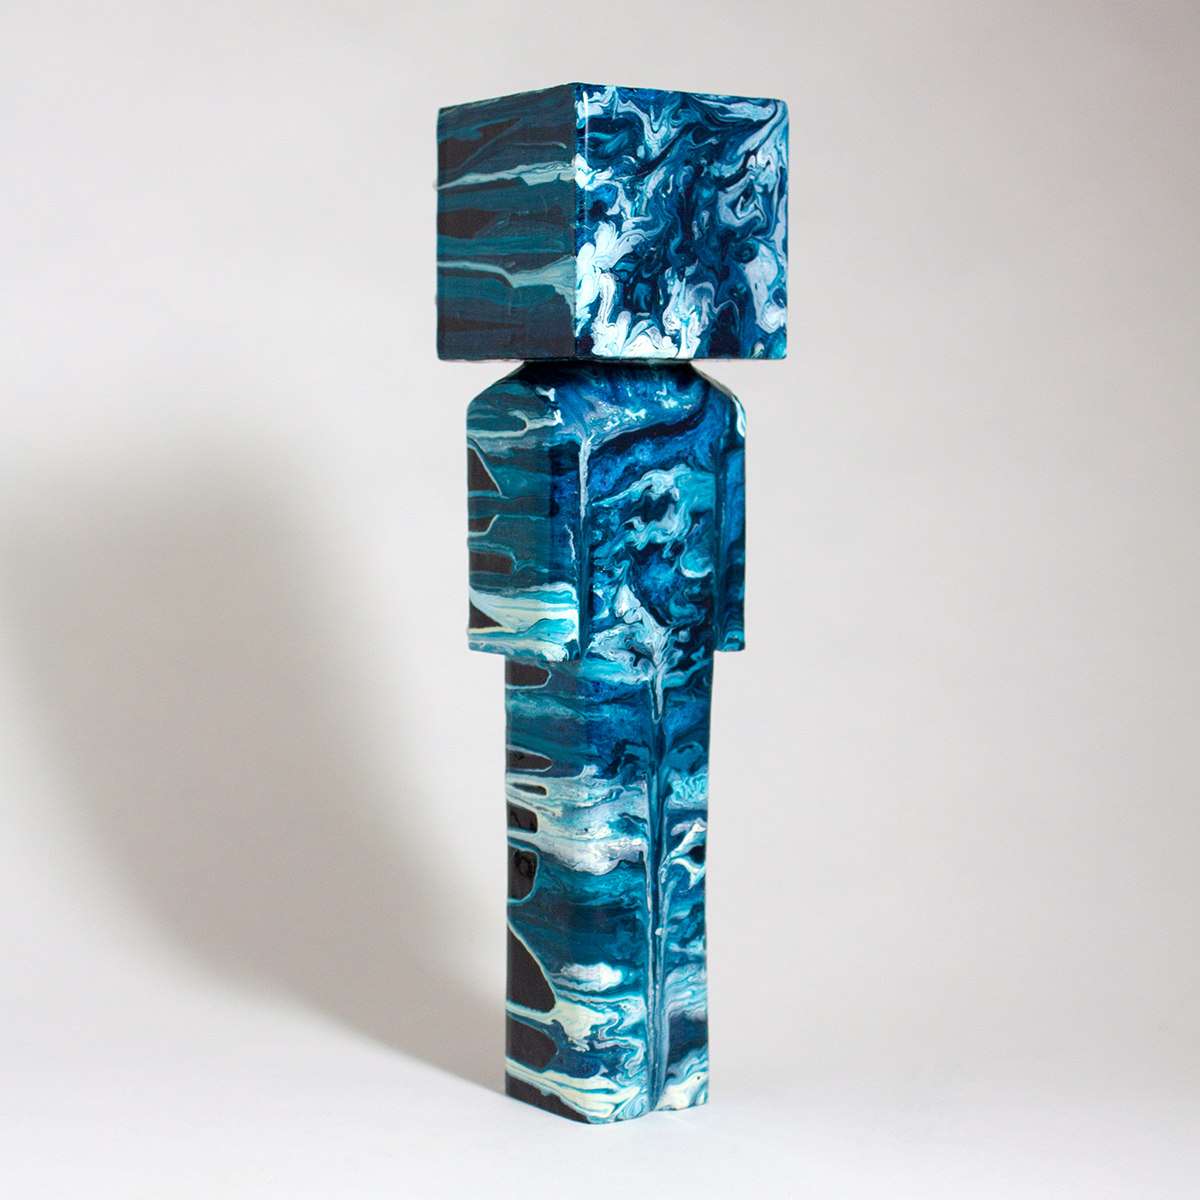 Poseidon (collab with Sophia Sabsowitz) - basswood, acrylic, resin - 2.5_x2.75_x9.8_ - $500.jpg